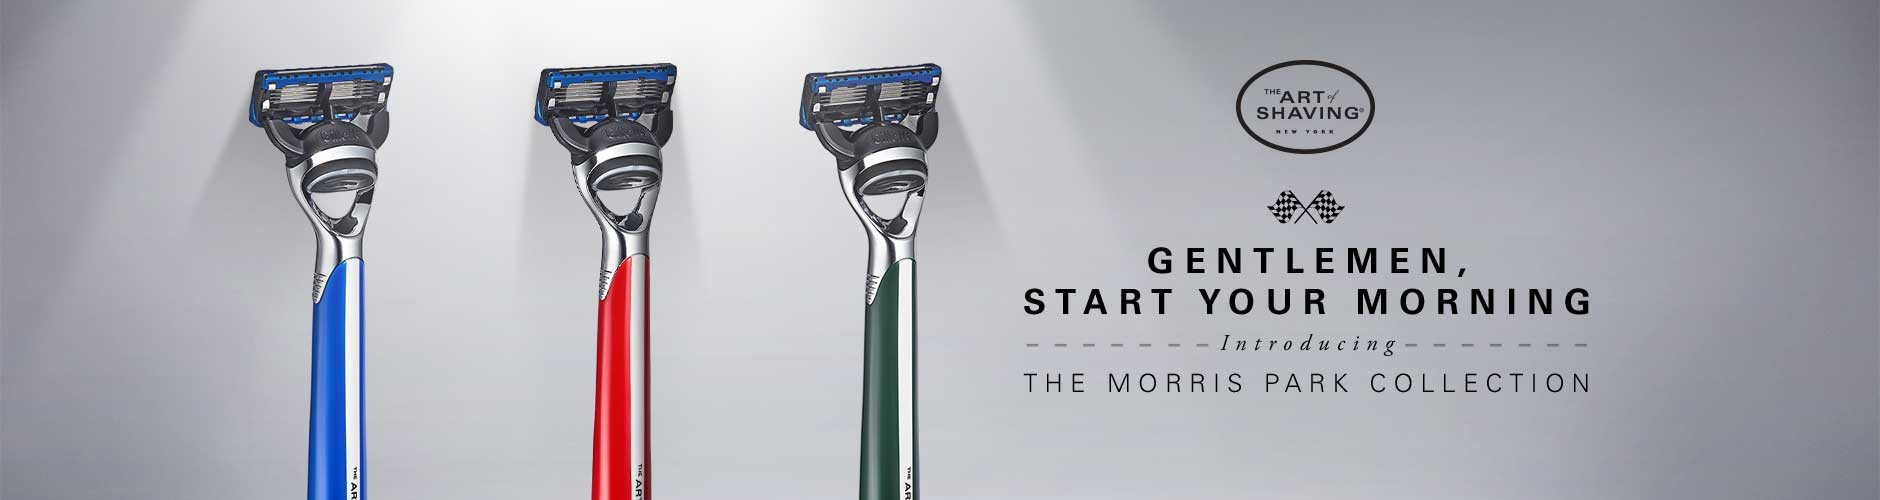 Gentlemen, Start Your Monring - Introducing The Morris Park Collection